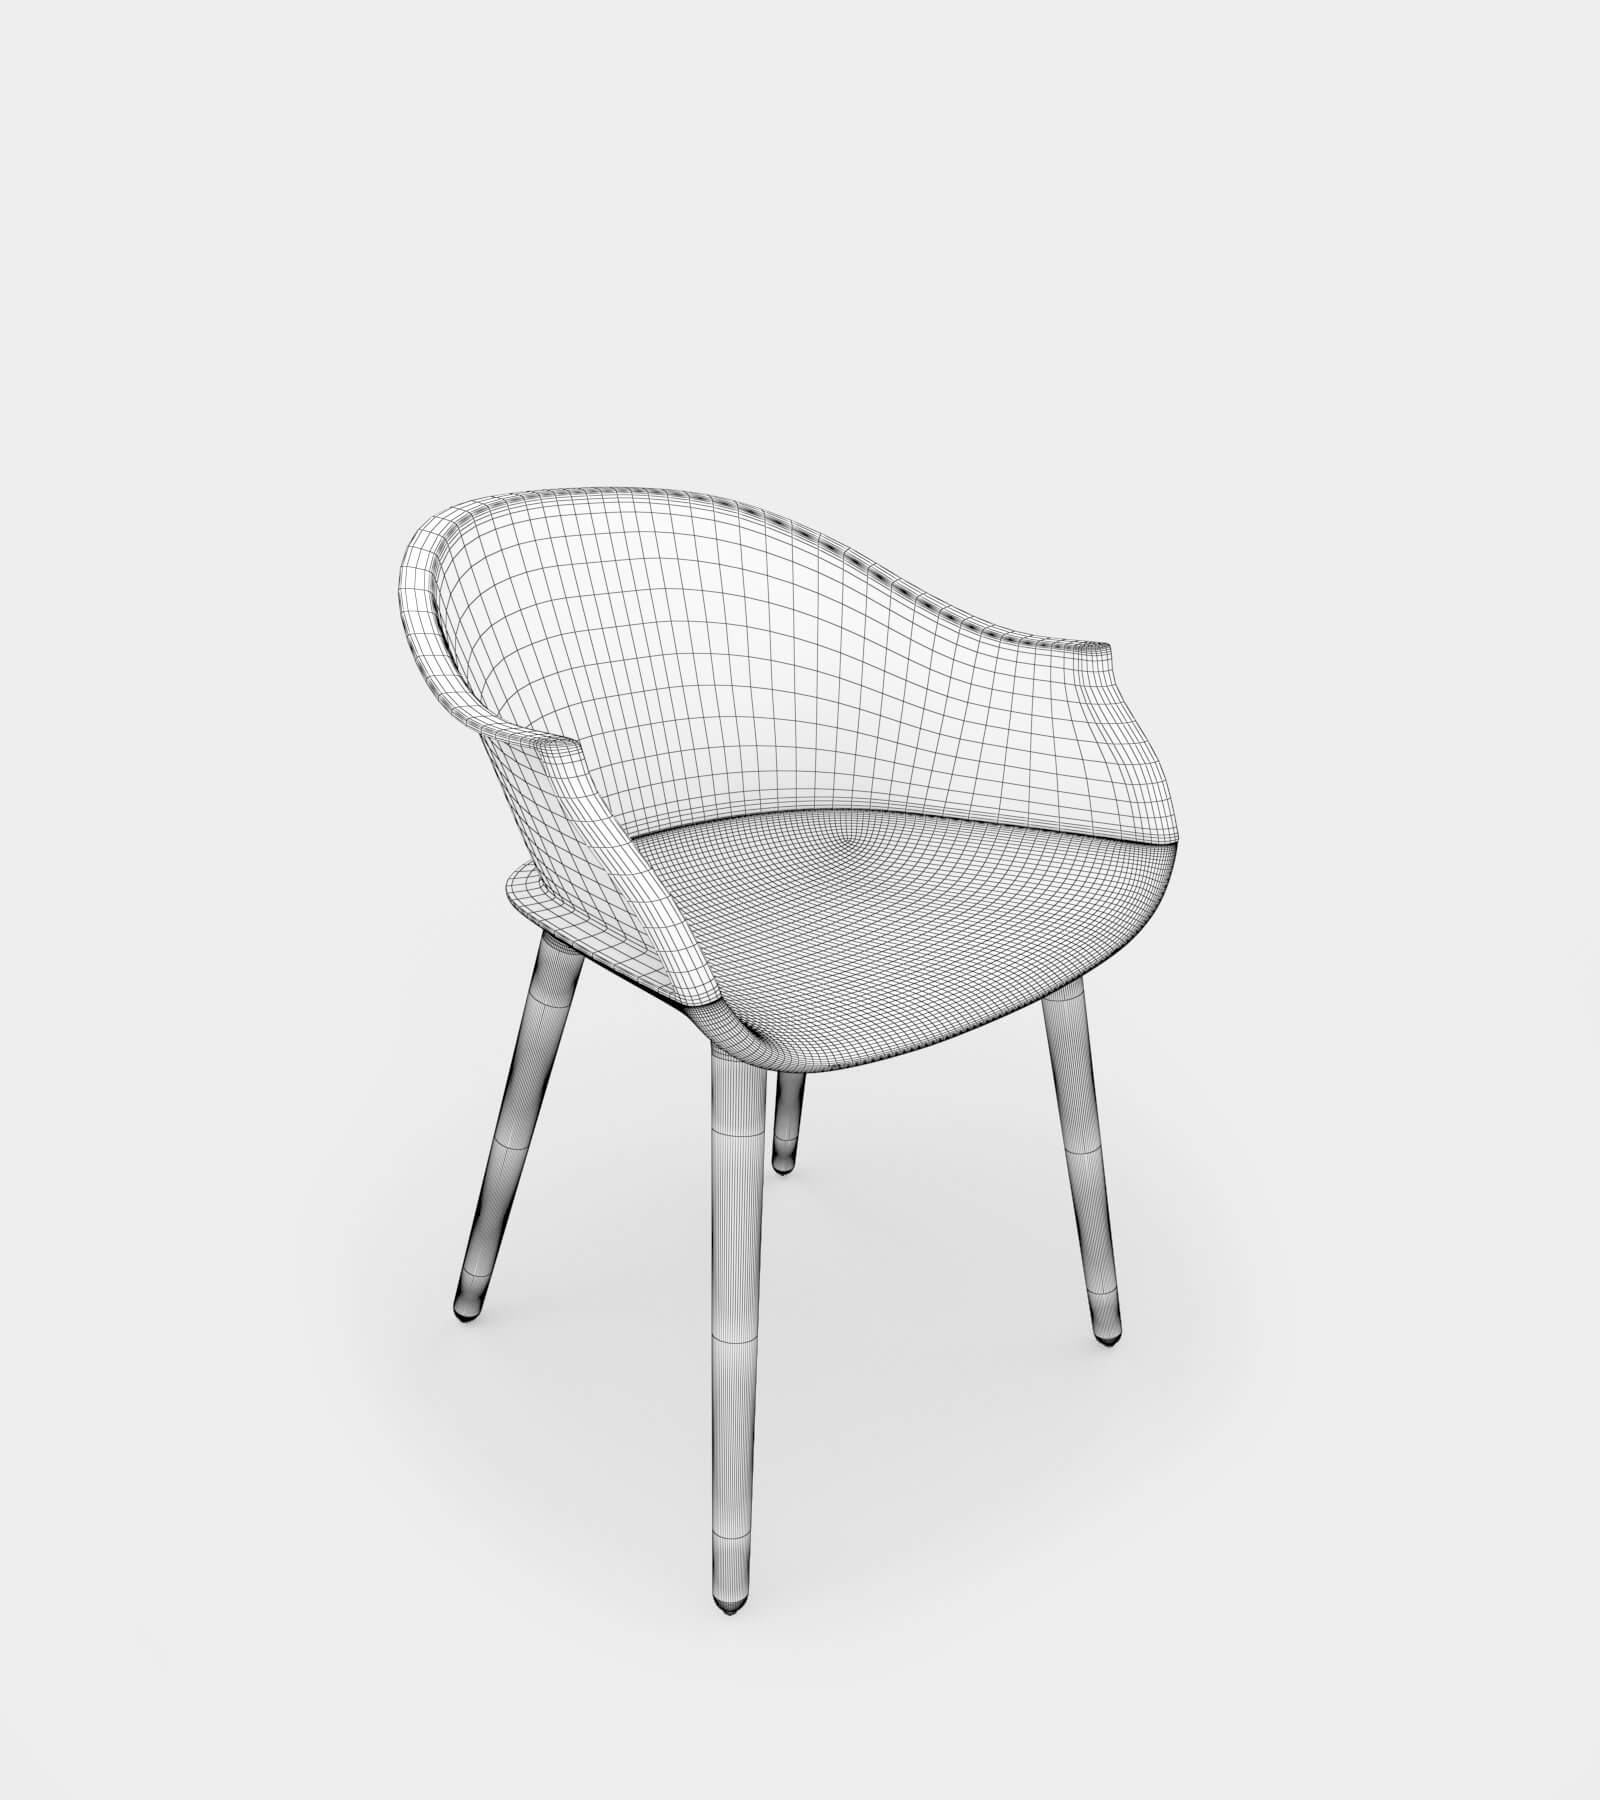 Round armchair & dining chair-wire-1 3D Model